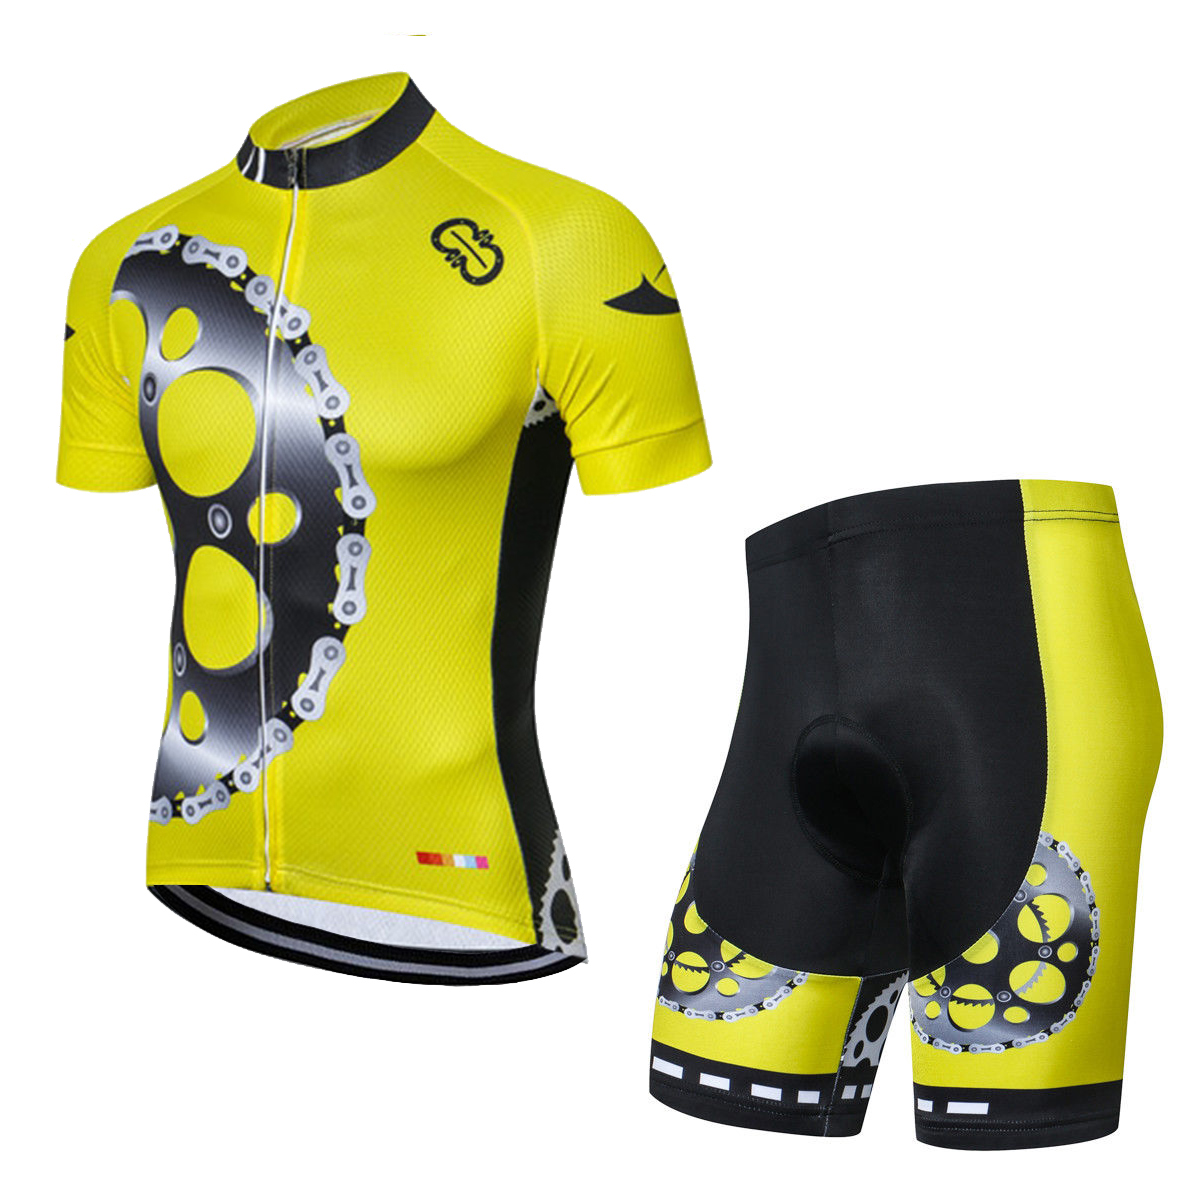 Yellow Cycling Gear Kit Men/'s Reflective Bicycle Jersey and Padded Shorts Set